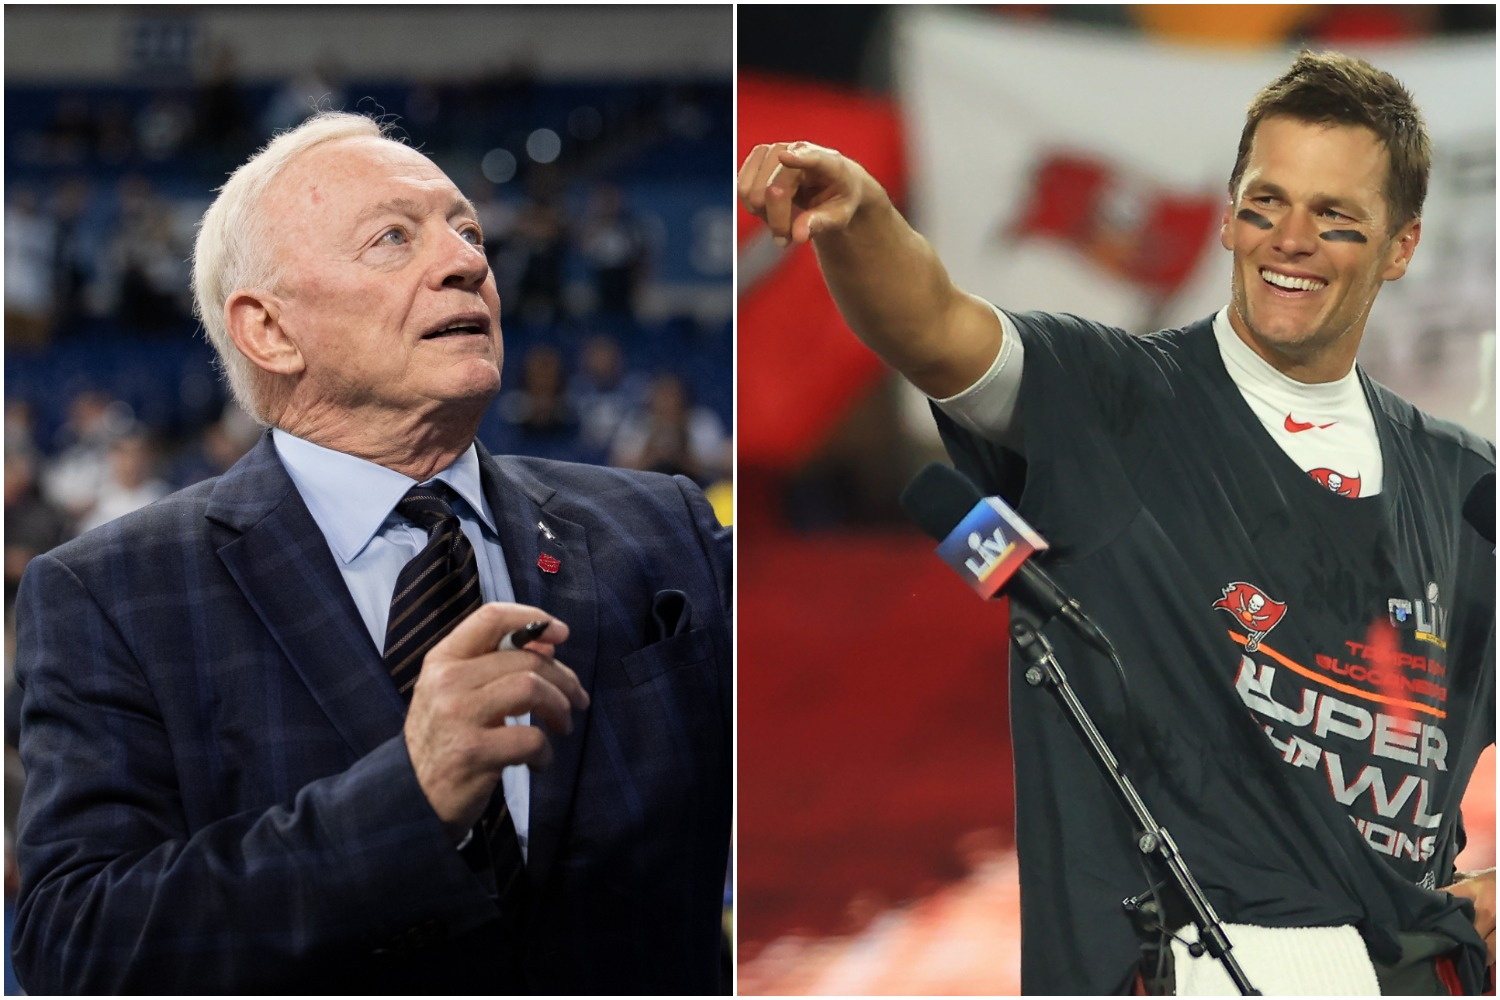 Tom Brady Exposed the Ugly Truth About the Cowboys by Taking a Veiled Shot at Jerry Jones' Team